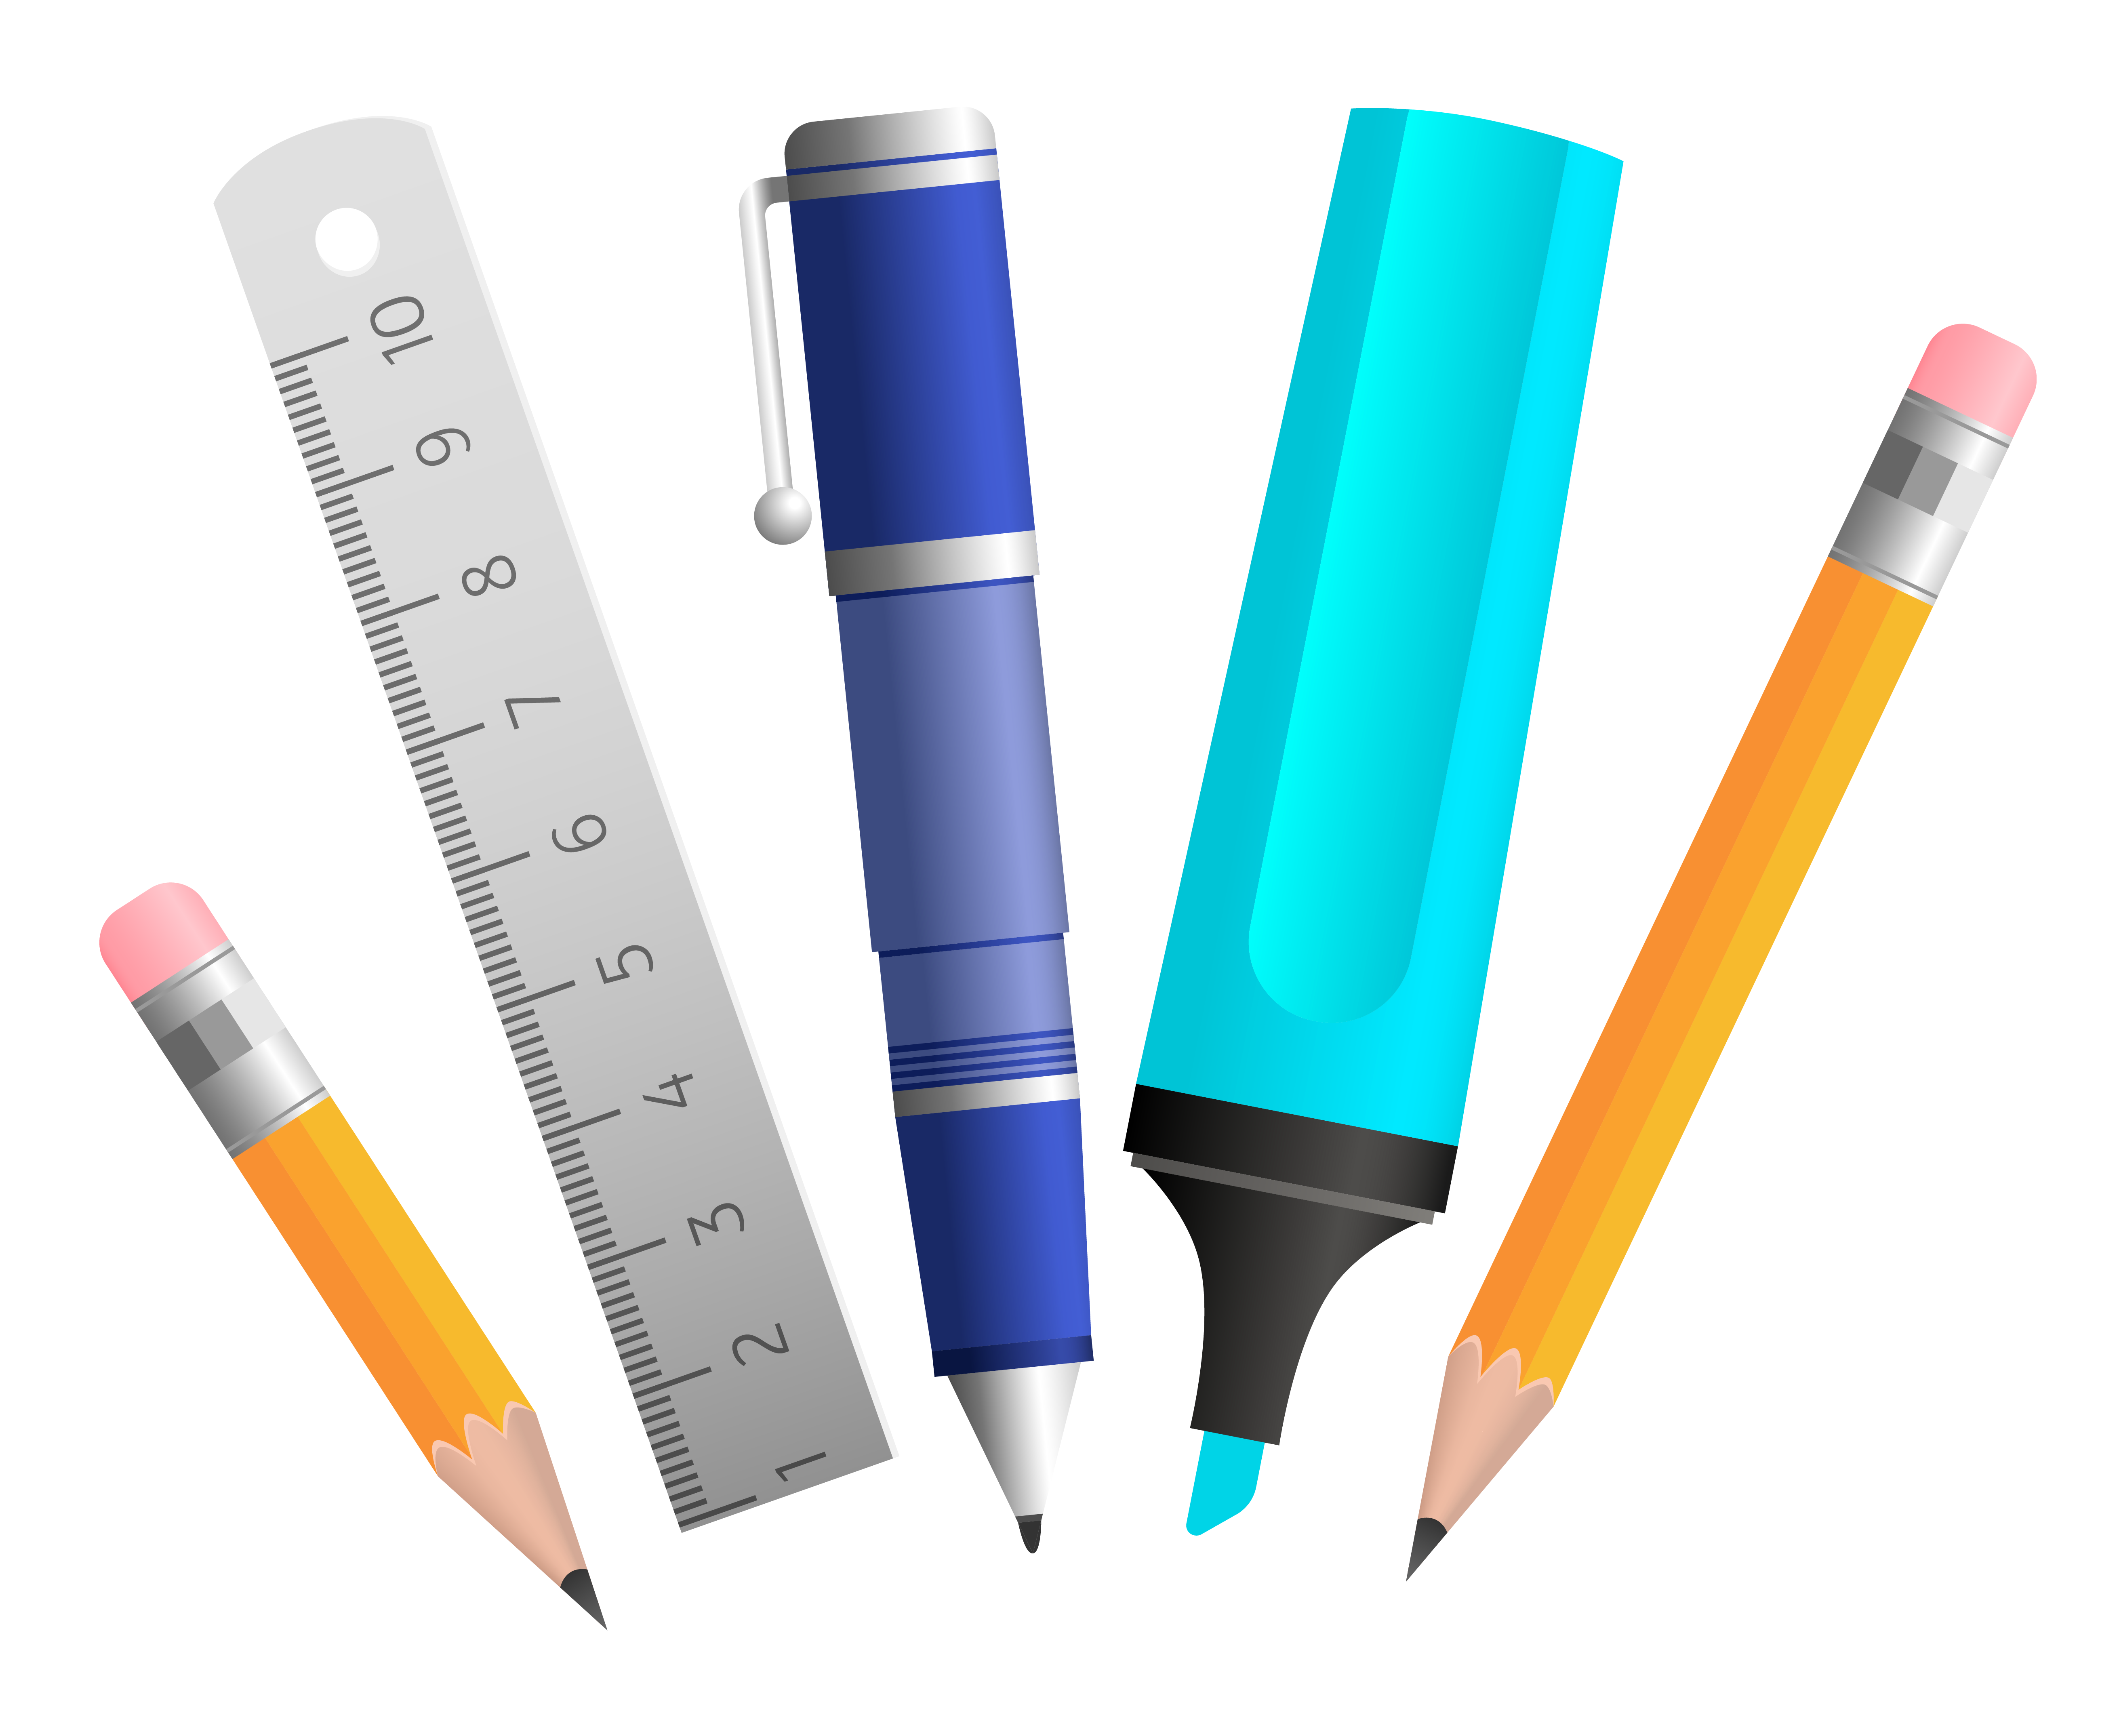 School tools png. Picture gallery yopriceville high